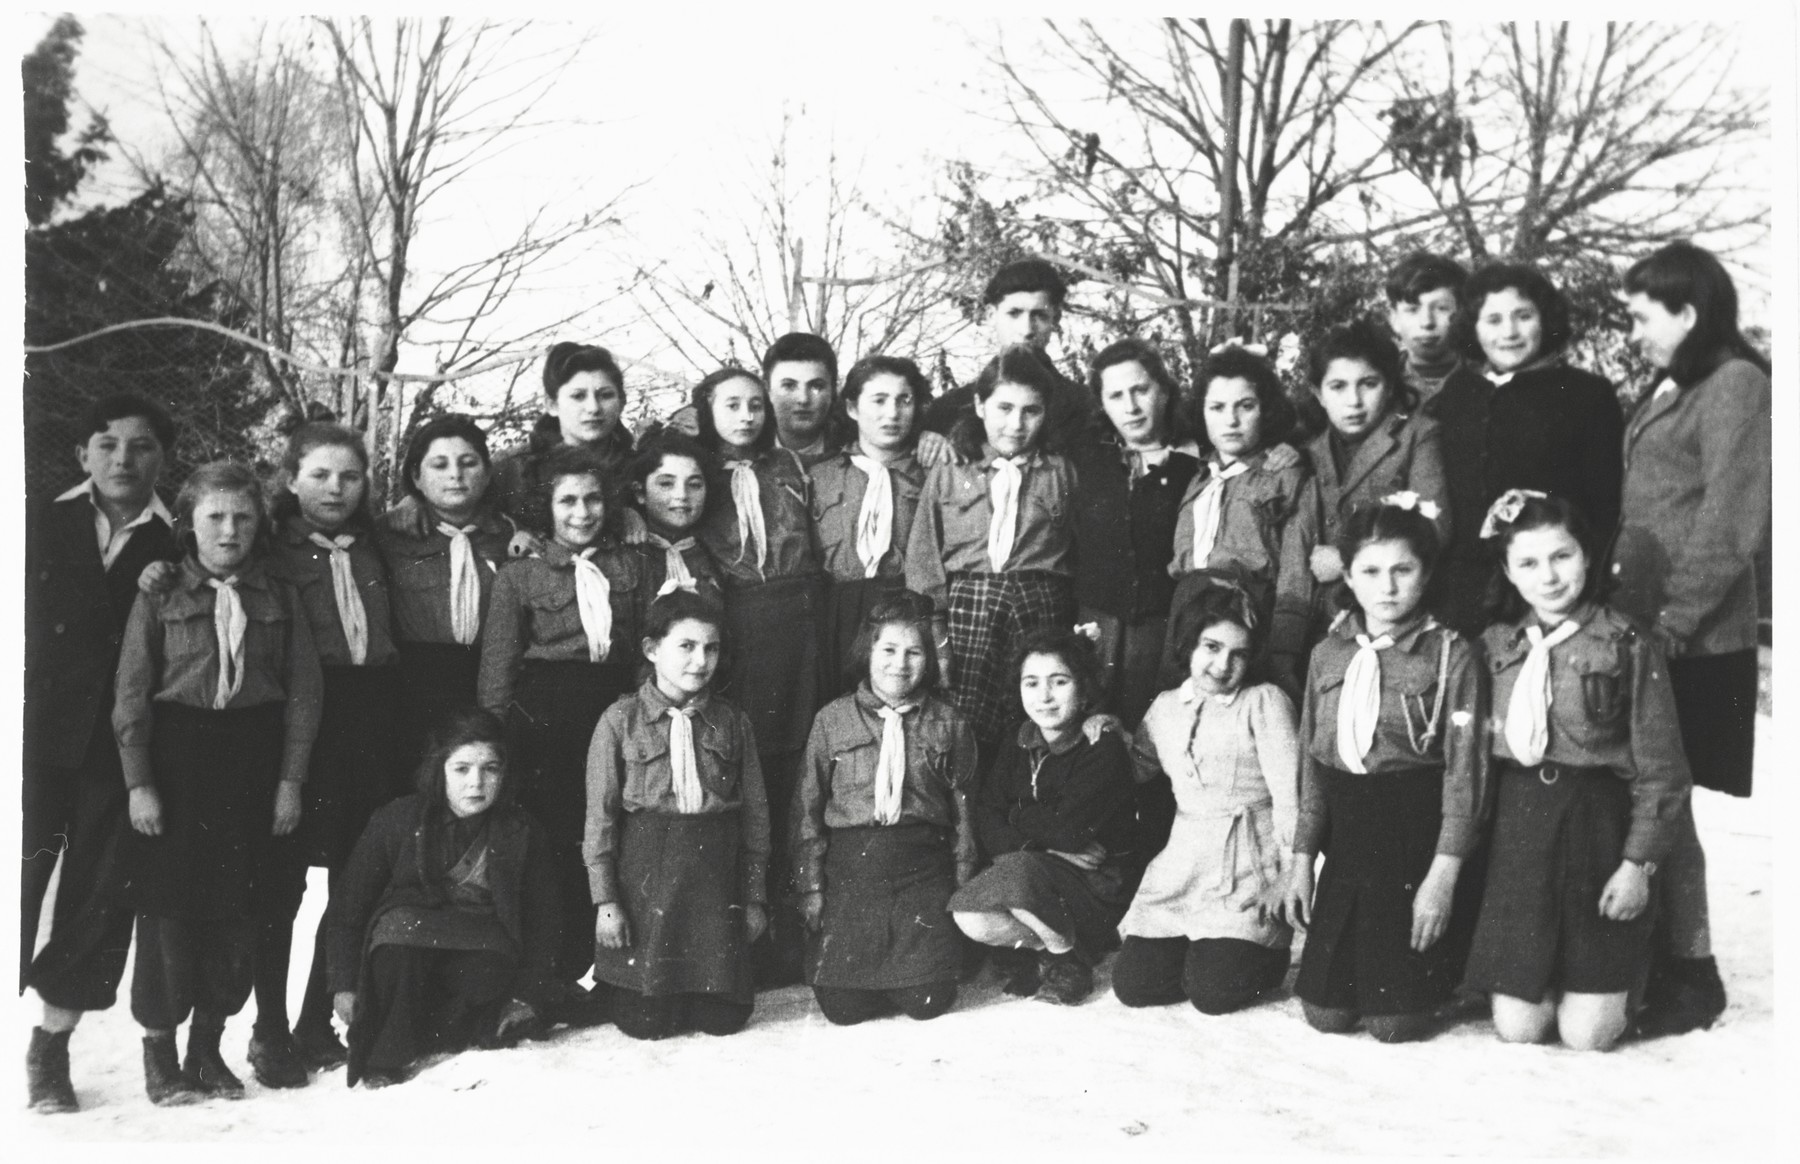 Group portrait of members of the Nitzanim Zionist youth group all in uniform, at the Selvino children's home.